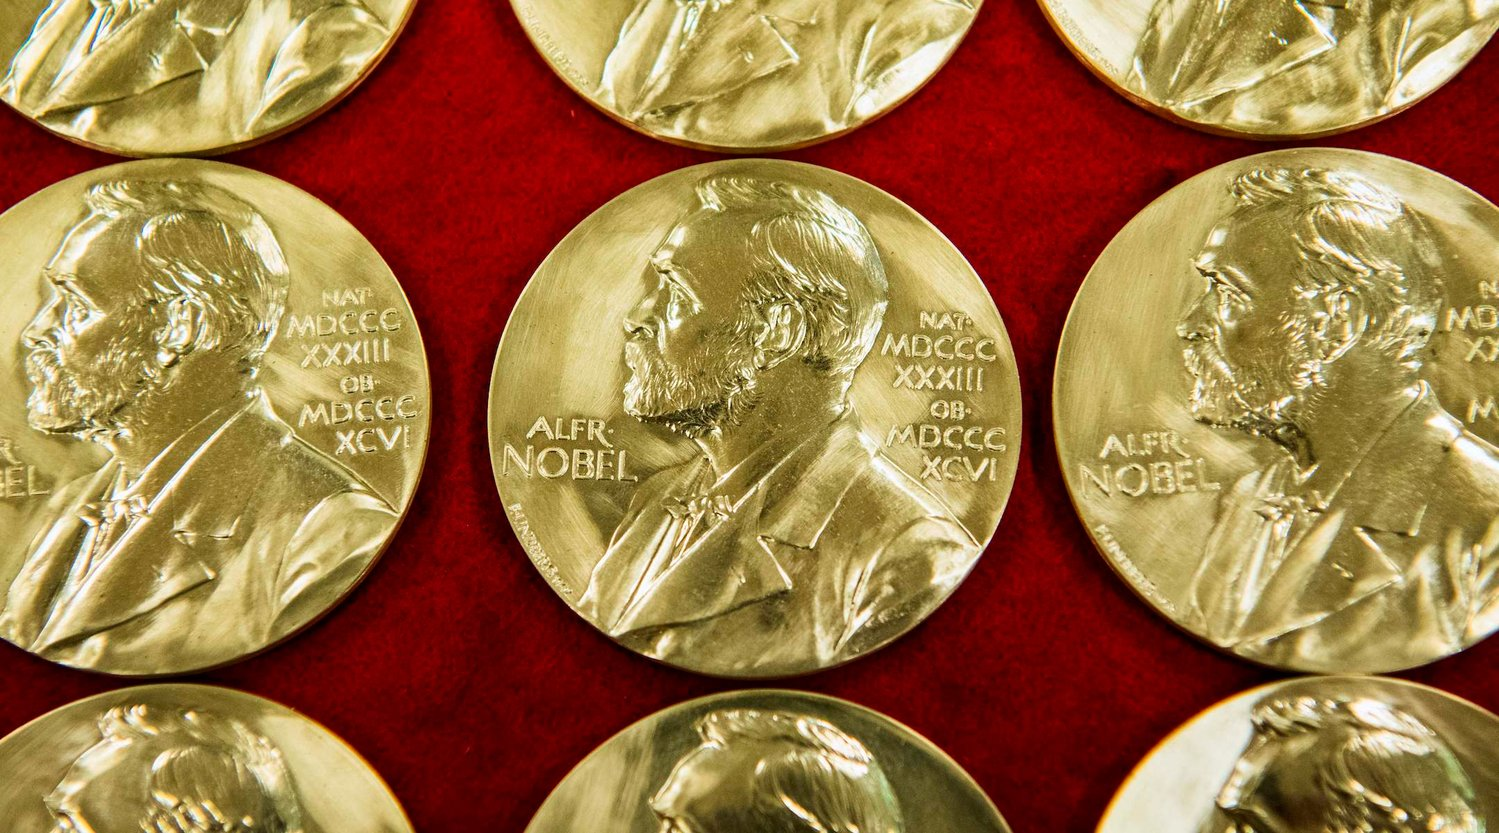 Nobel Prize medals are pictured at the end of the production on October 29, 2019 in Eskilstuna, Sweden. - The Nobel Prize awards ceremonies will take place on December 10, the anniversary of the death of the founder of the prize, Swedish industrialist and philanthropist Alfred Nobel. (Photo by Jonathan NACKSTRAND / AFP) (Photo by JONATHAN NACKSTRAND/AFP via Getty Images)